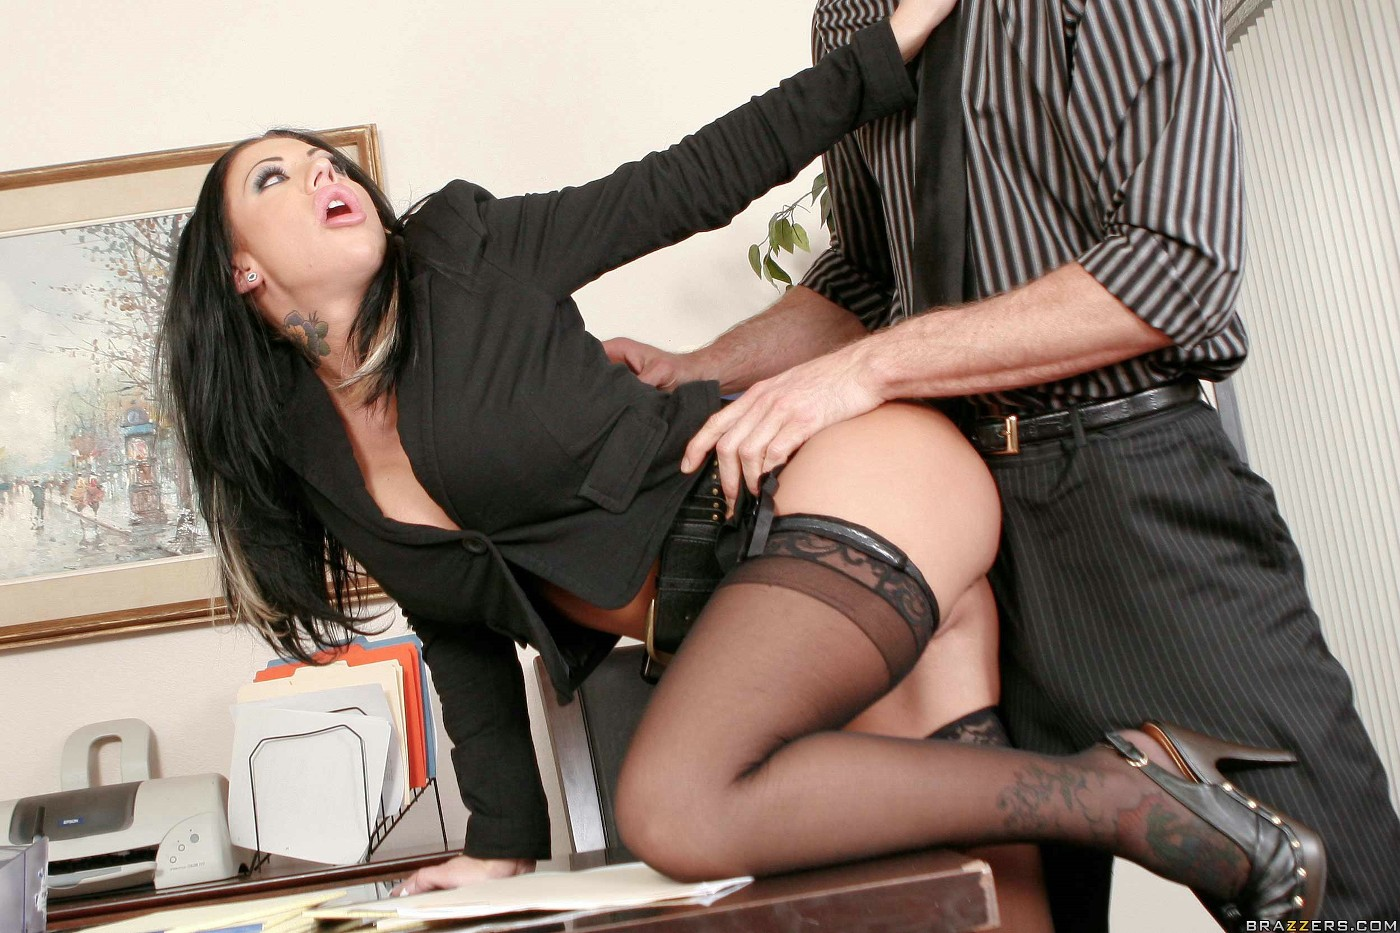 Girl bent over desk